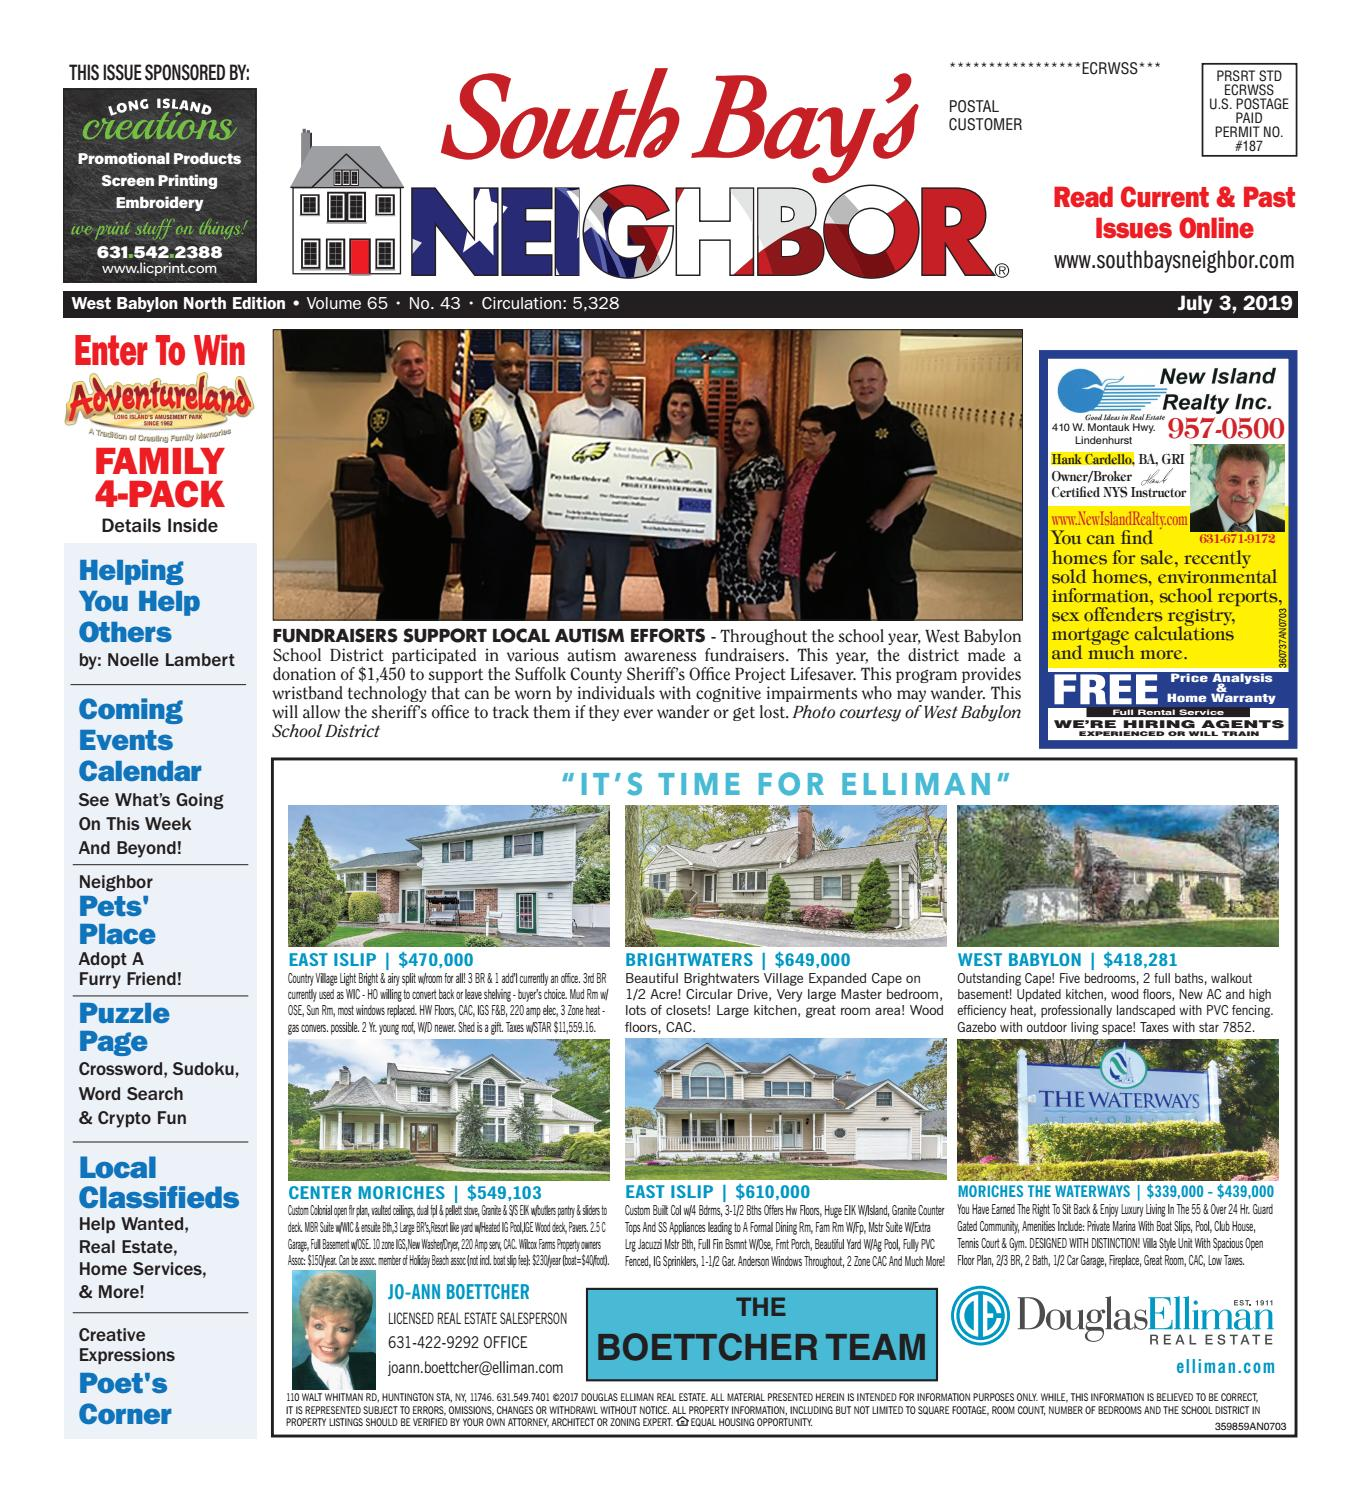 July 3, 2019 West Babylon North by South Bay's Neighbor